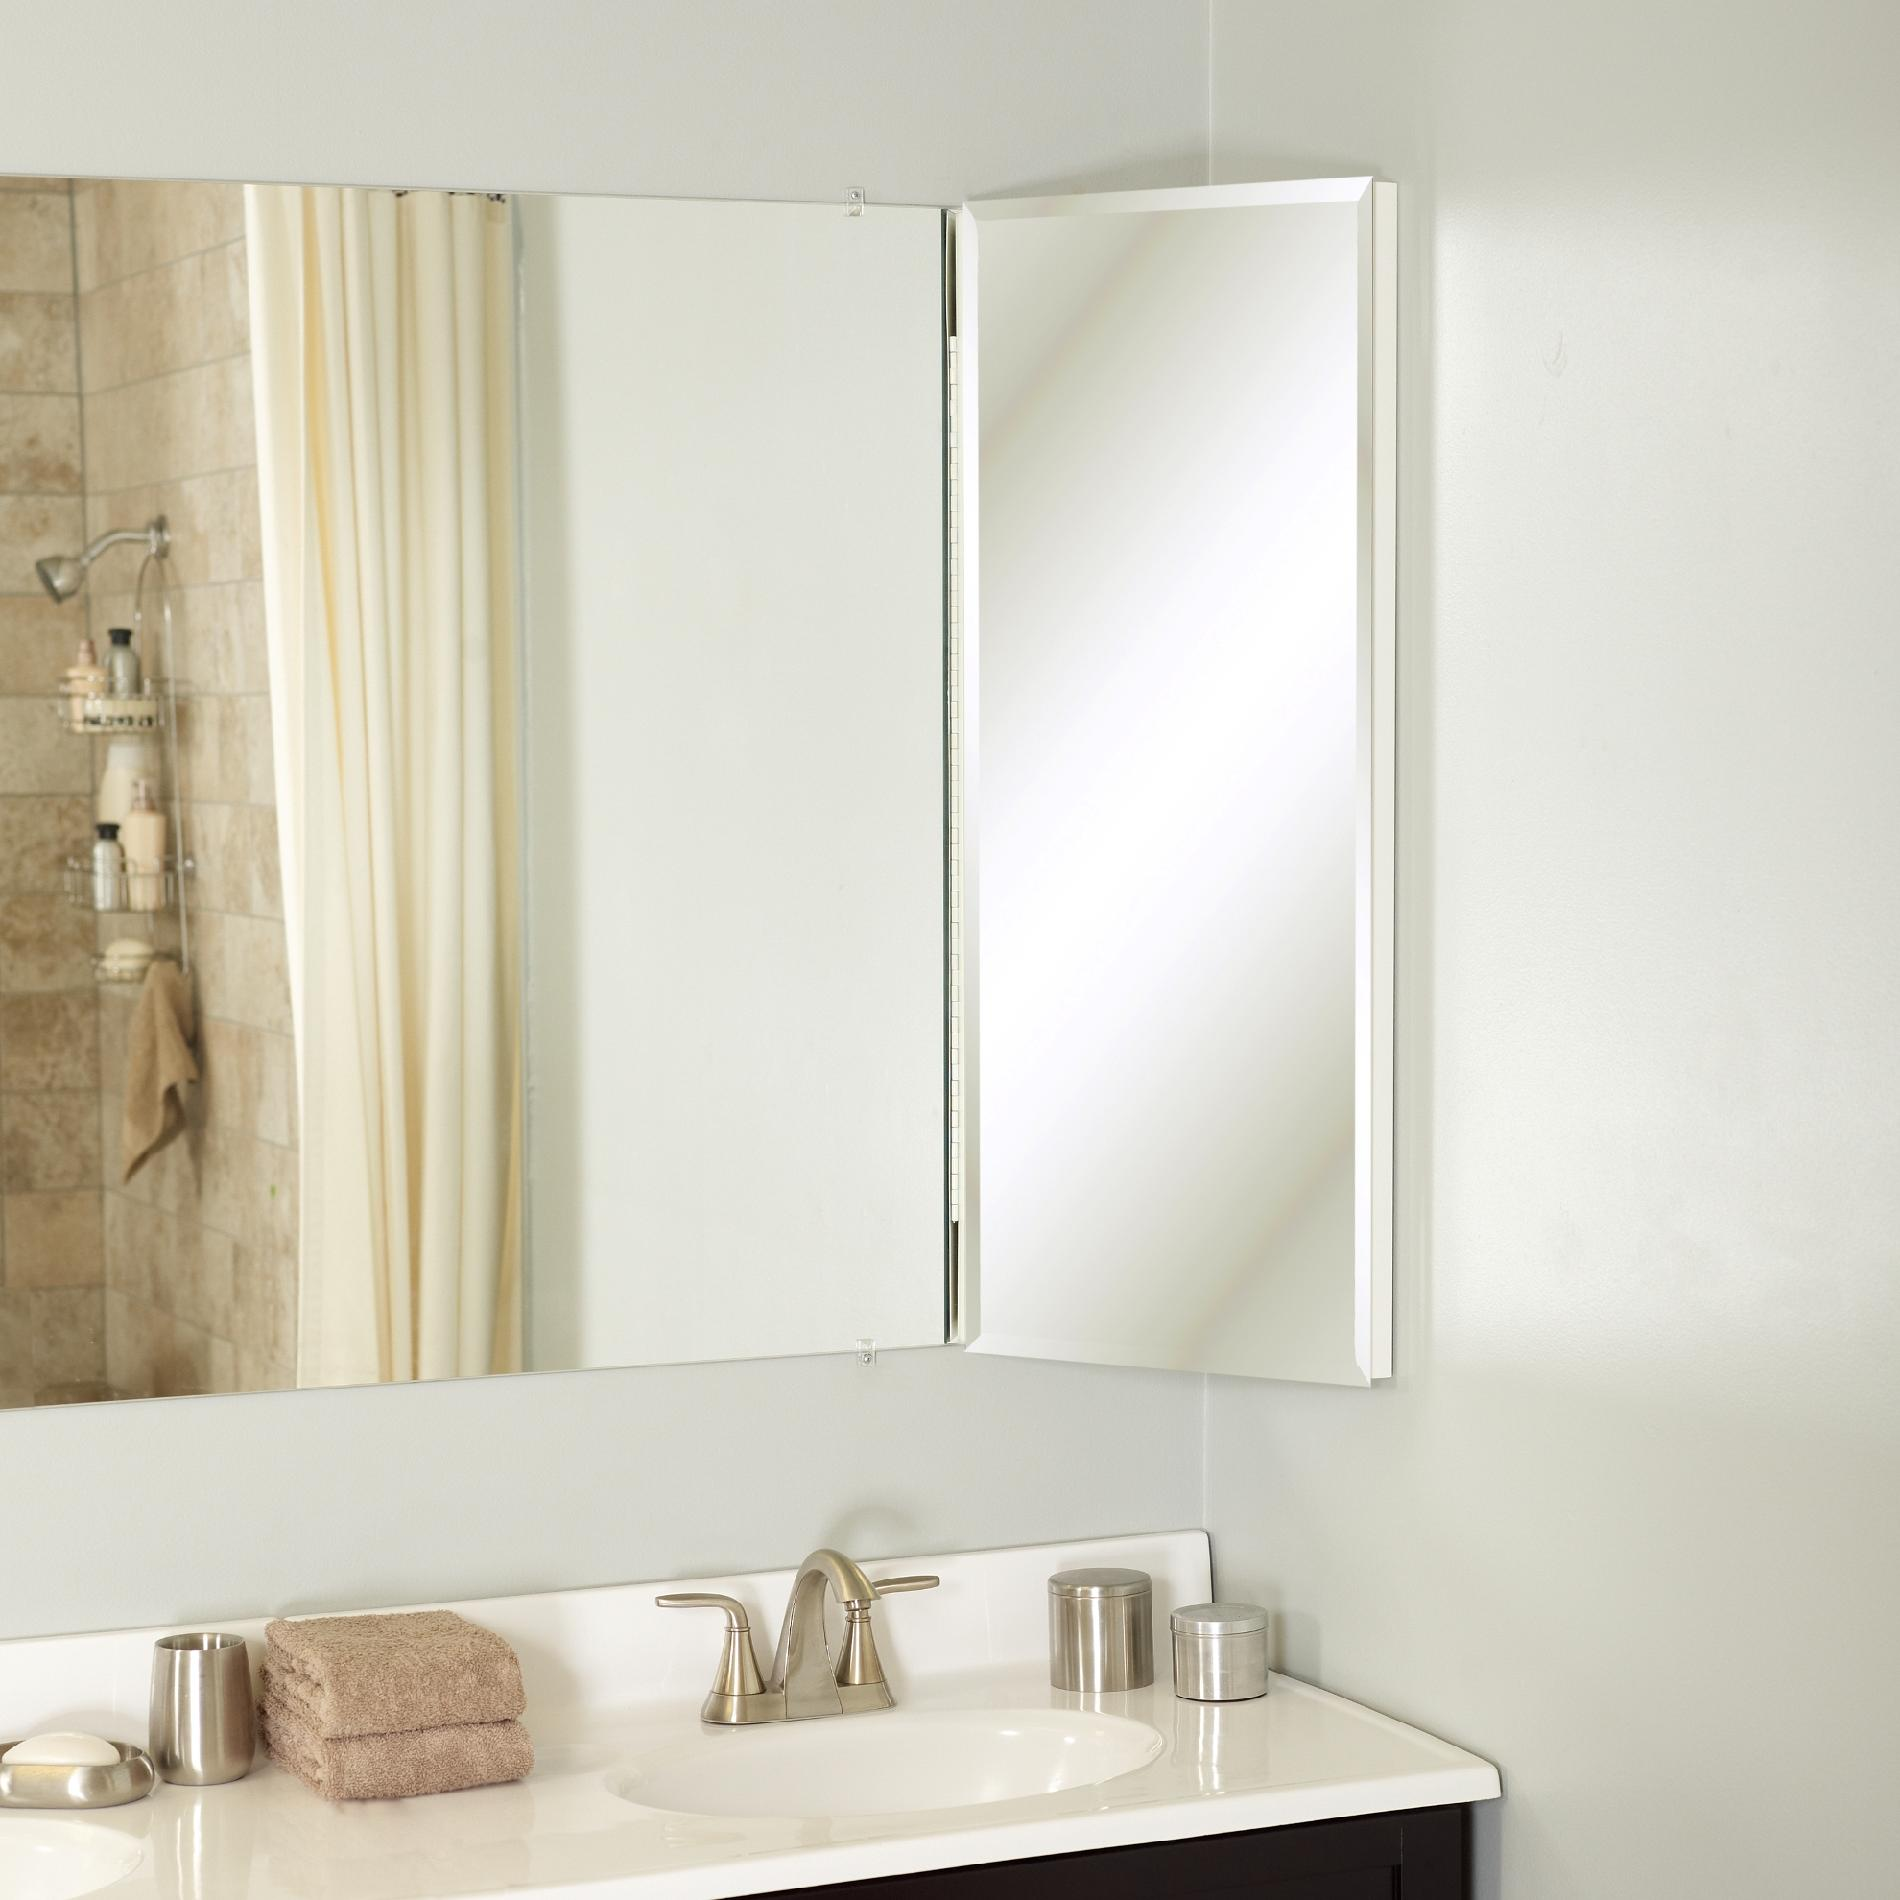 Zenith Products Over the Mirror Corner Cabinet 14 x 36